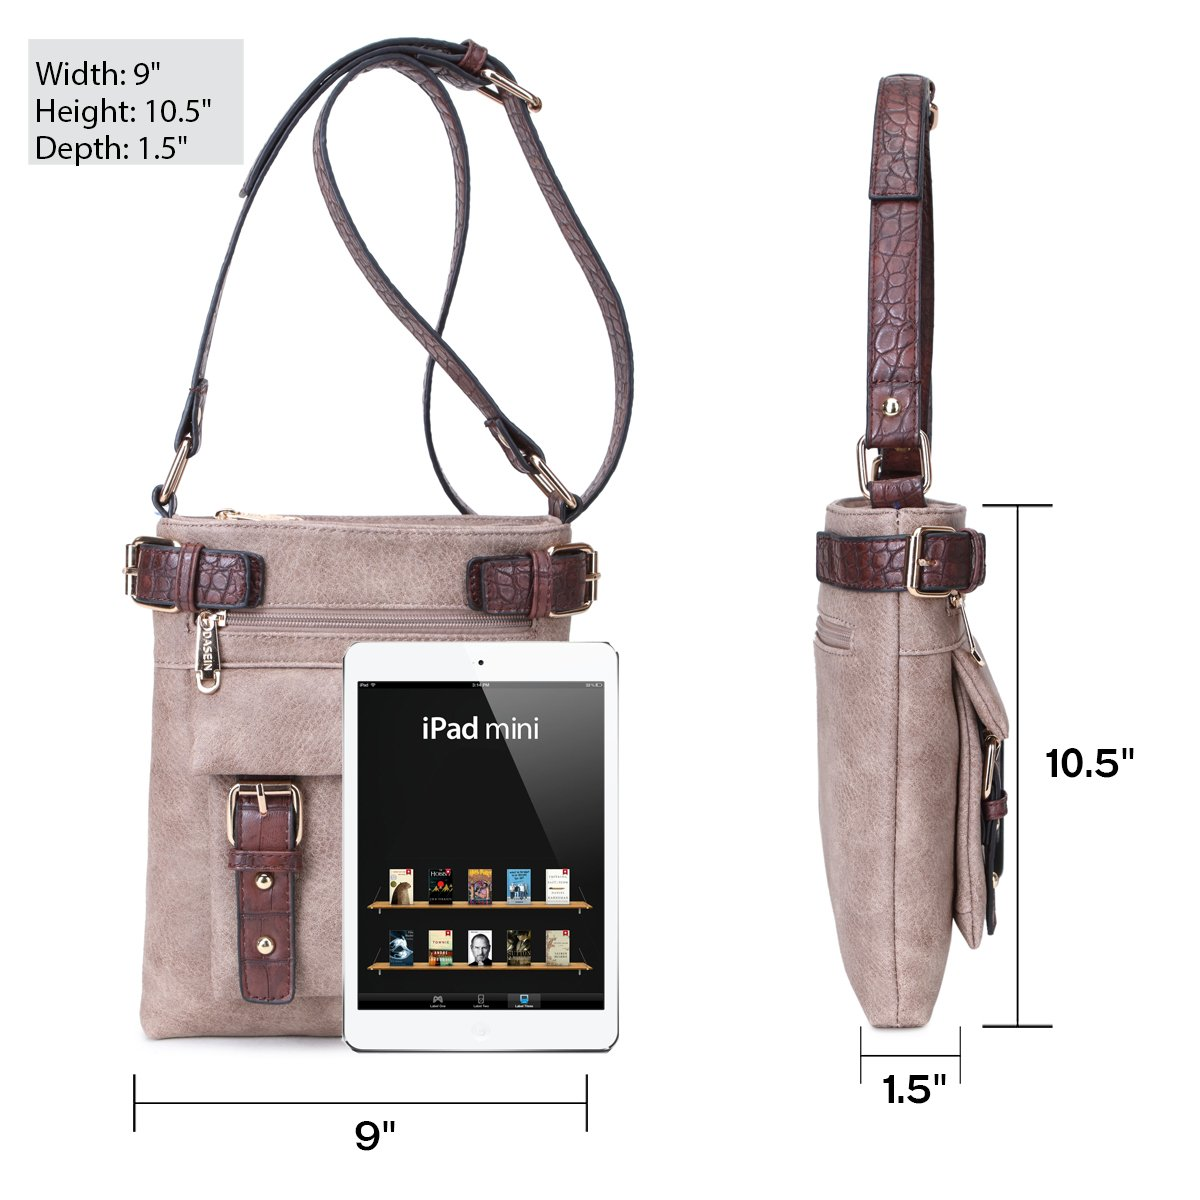 MMK Collection Fashion Crossbody Bag~Messenger Purse for Women~Designer Fashion handbag (MA-09-6333-1-BK) by Marco M. Kerry (Image #3)